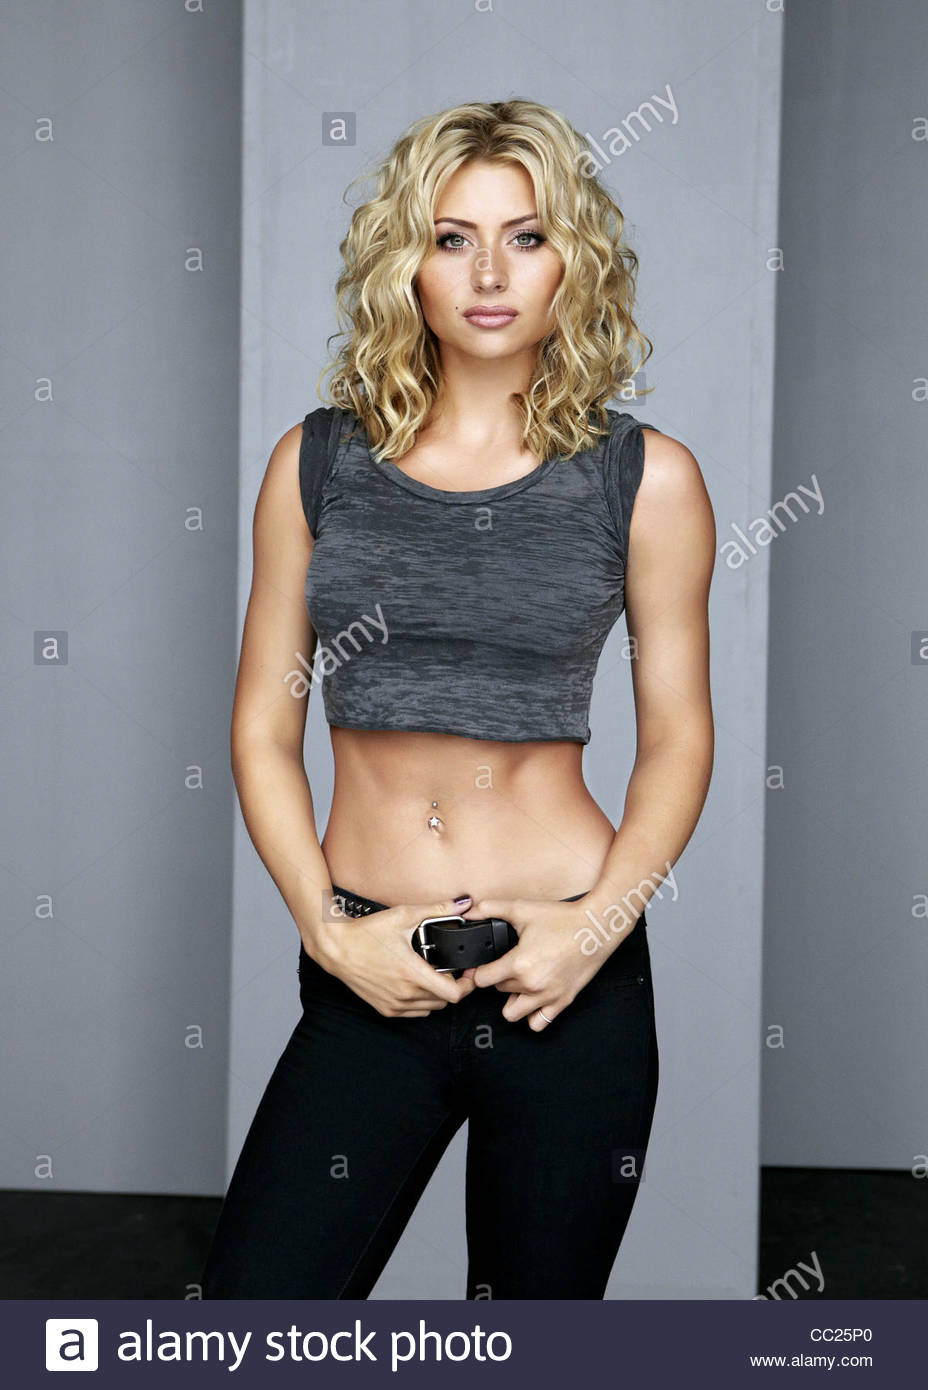 Selfie Alyson Michalka  nude (13 photo), Snapchat, braless